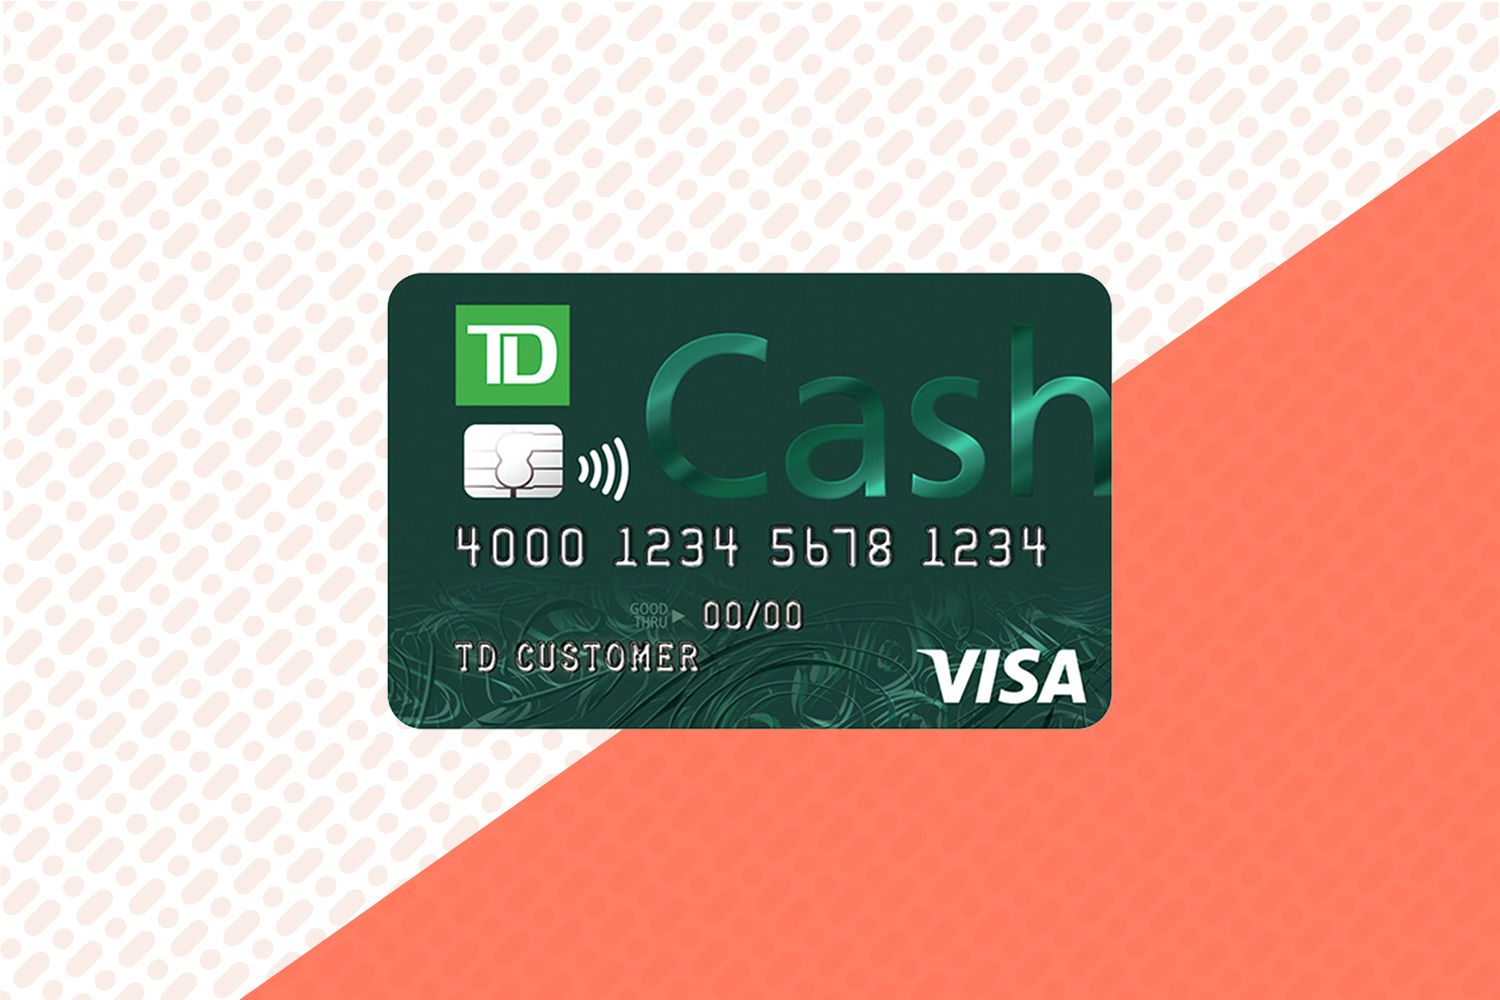 Td Credit Cards >> Td Cash Card Review A Wallet Worthy Card For Foodies